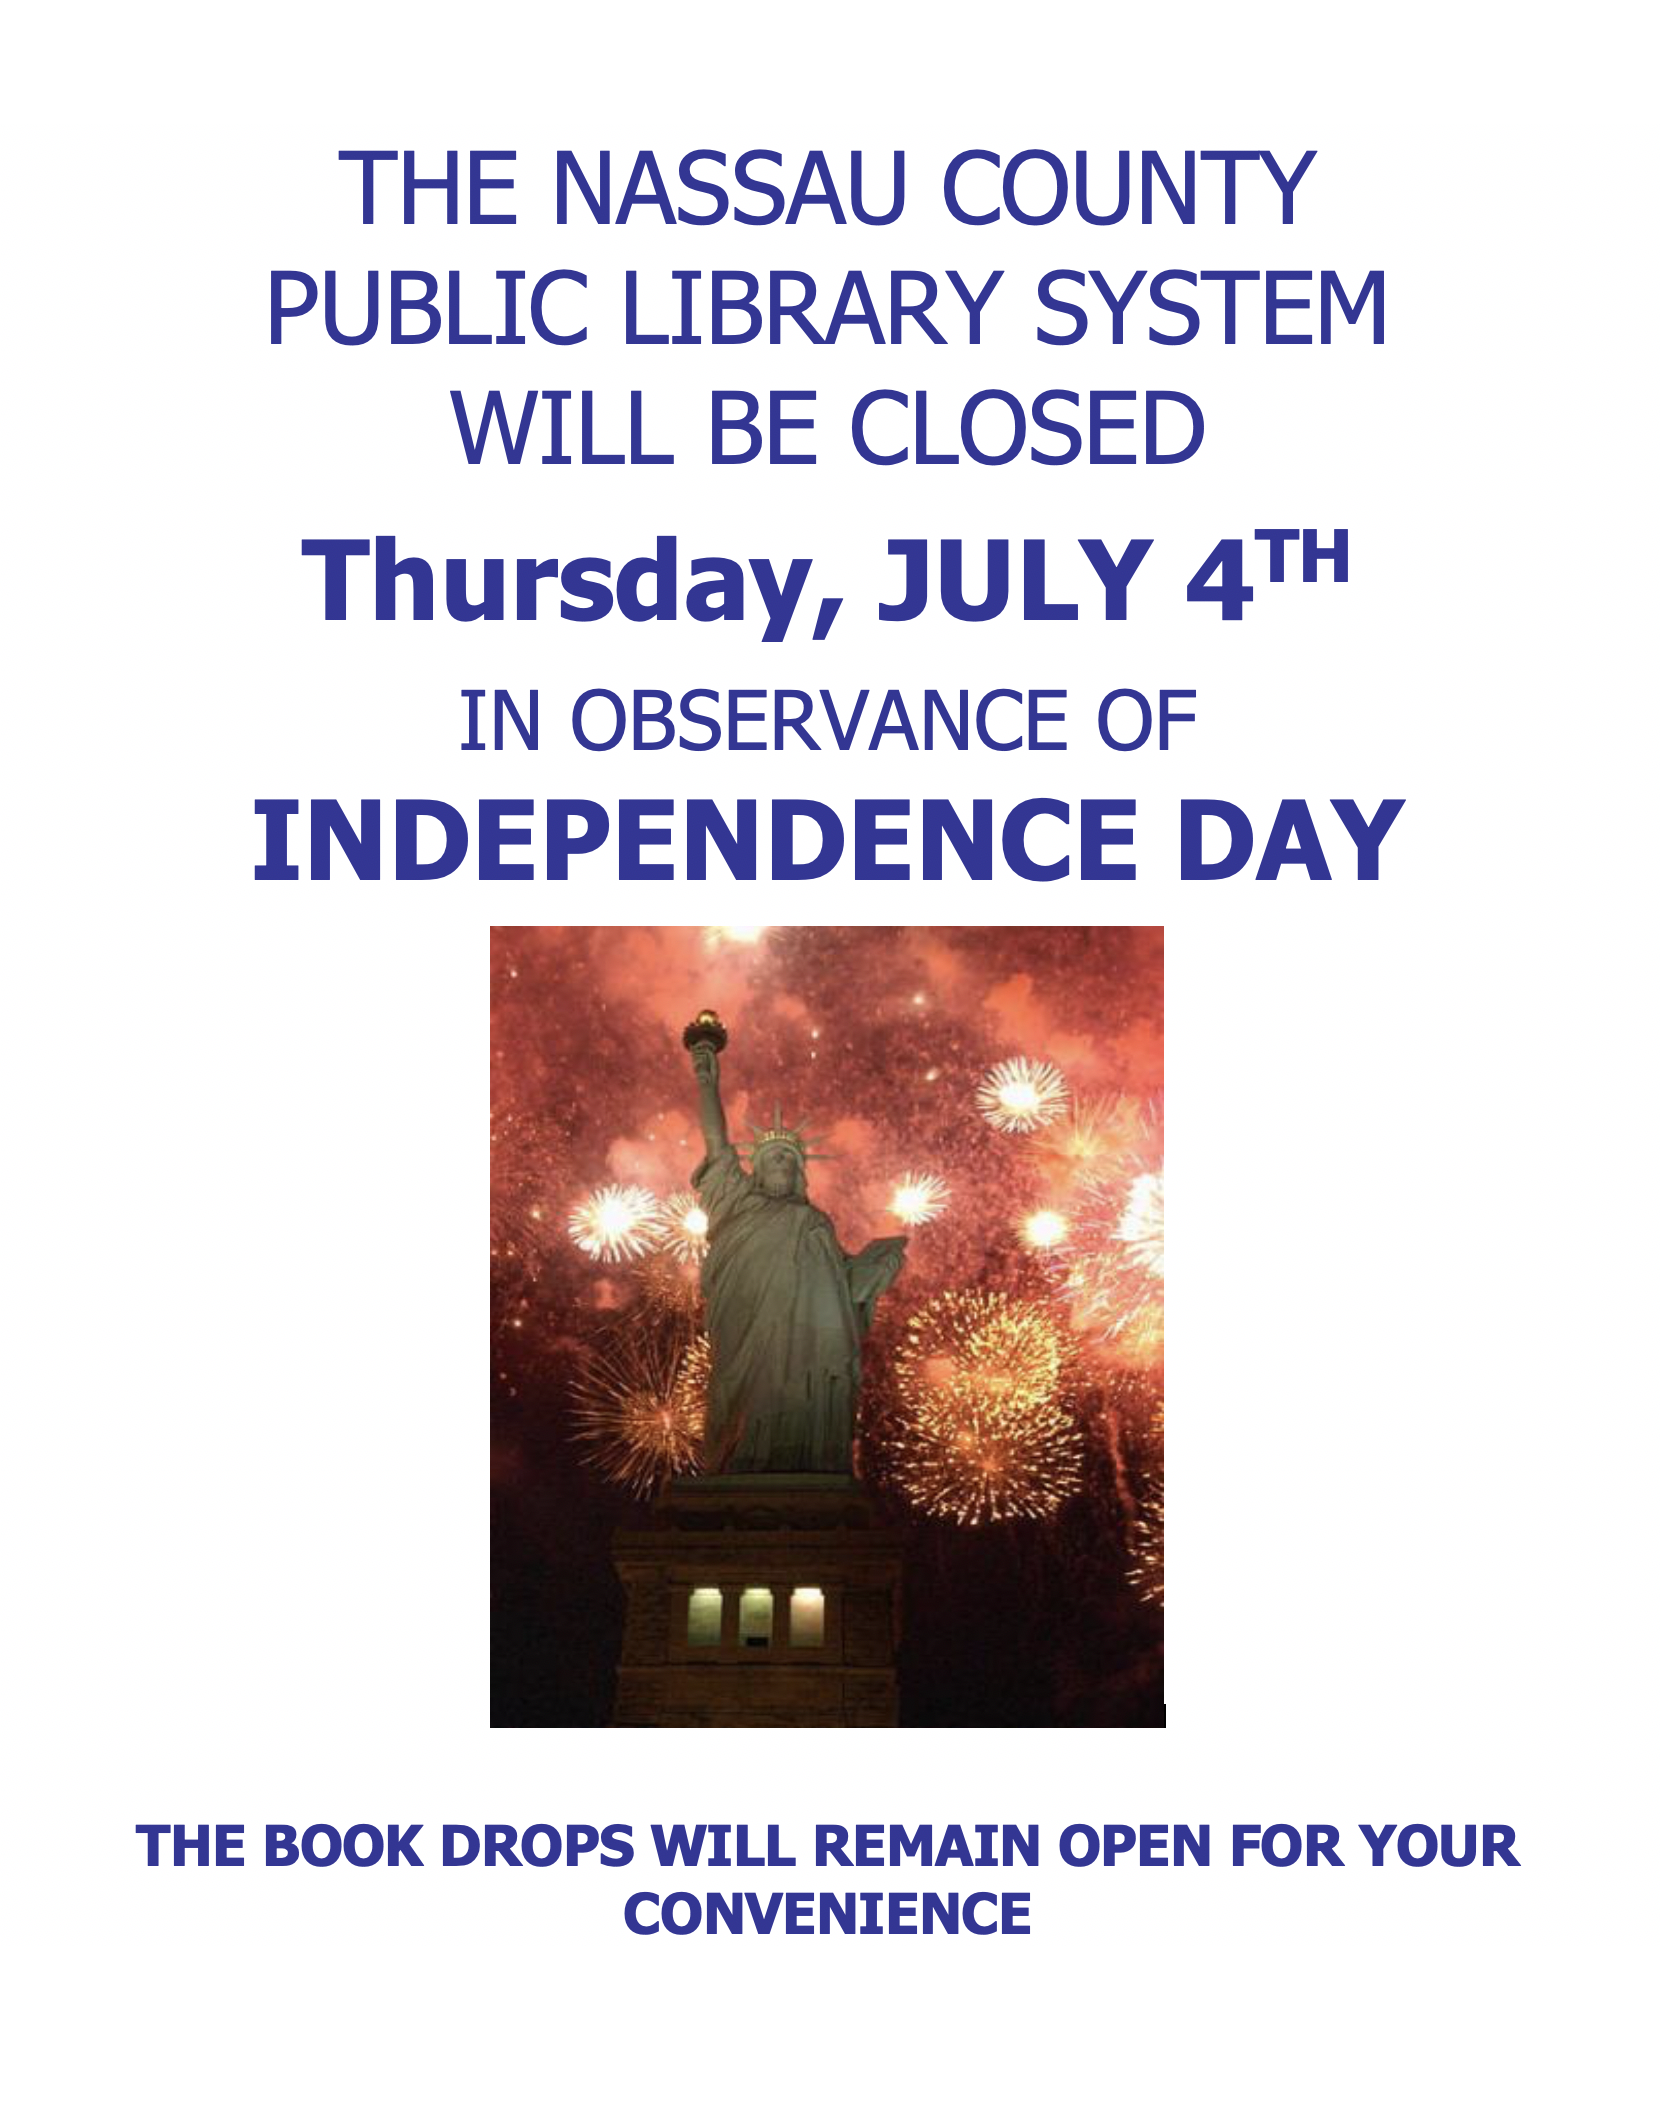 Library Closed for 4th of July